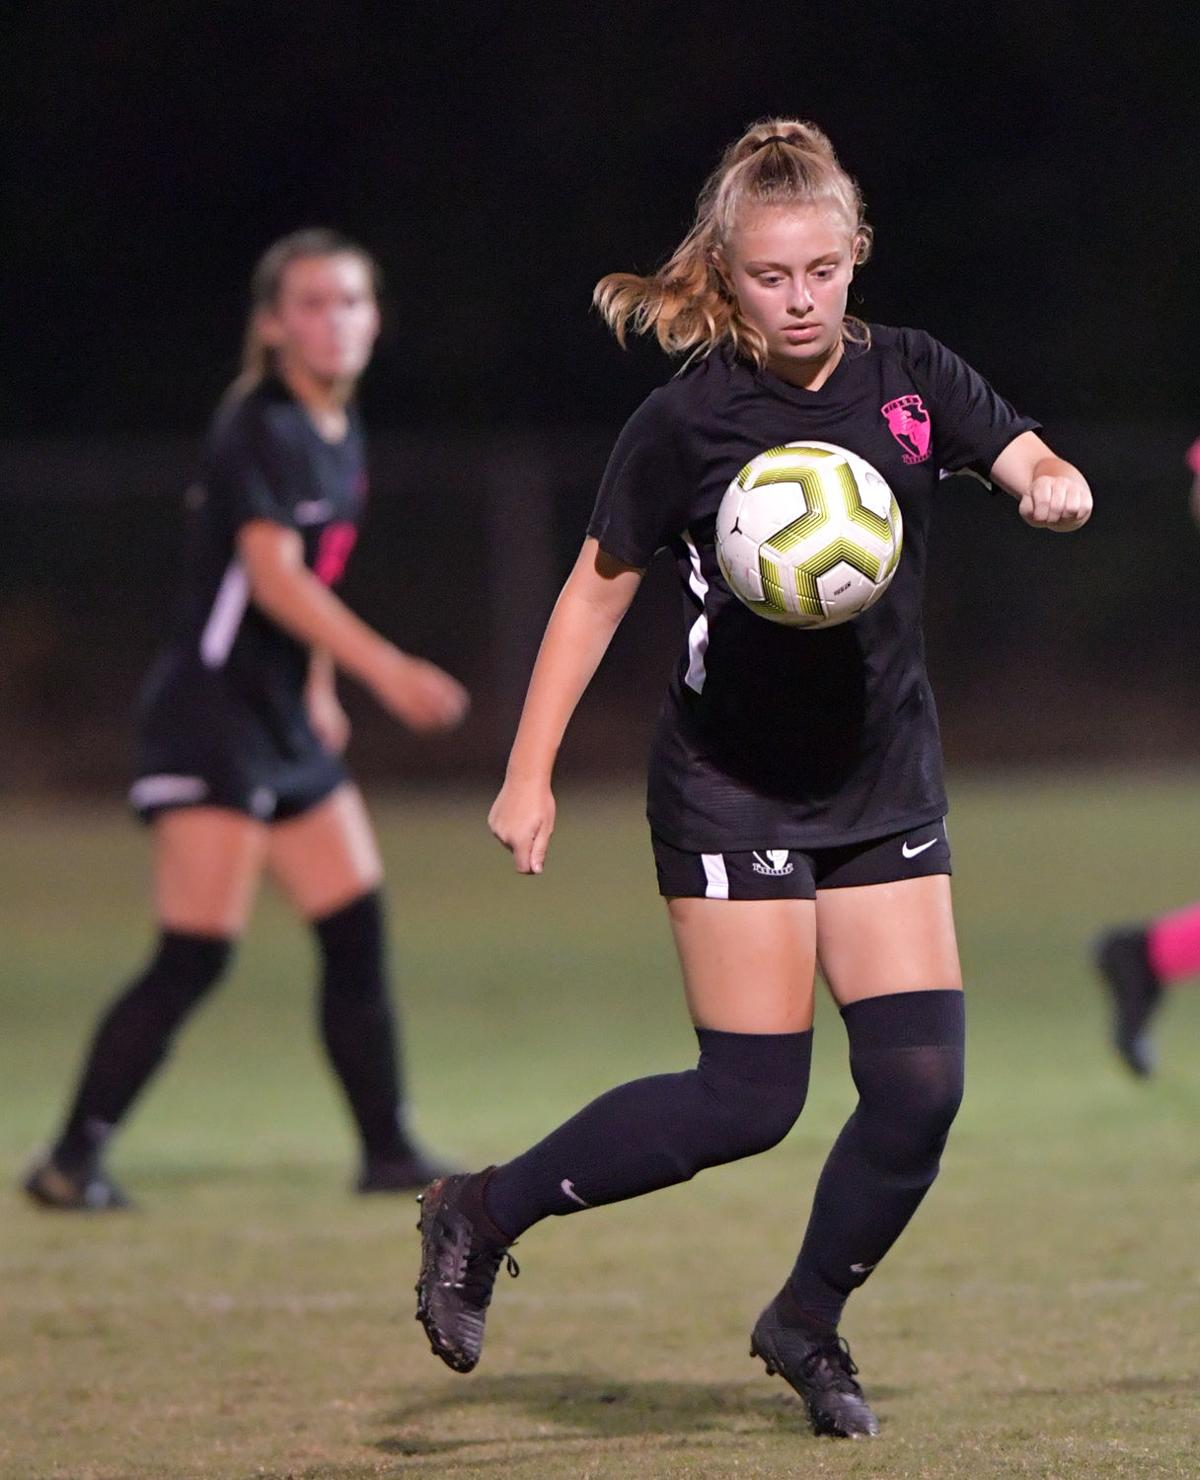 Briley Hitt watches a ball closely before gathering possession. .jpg